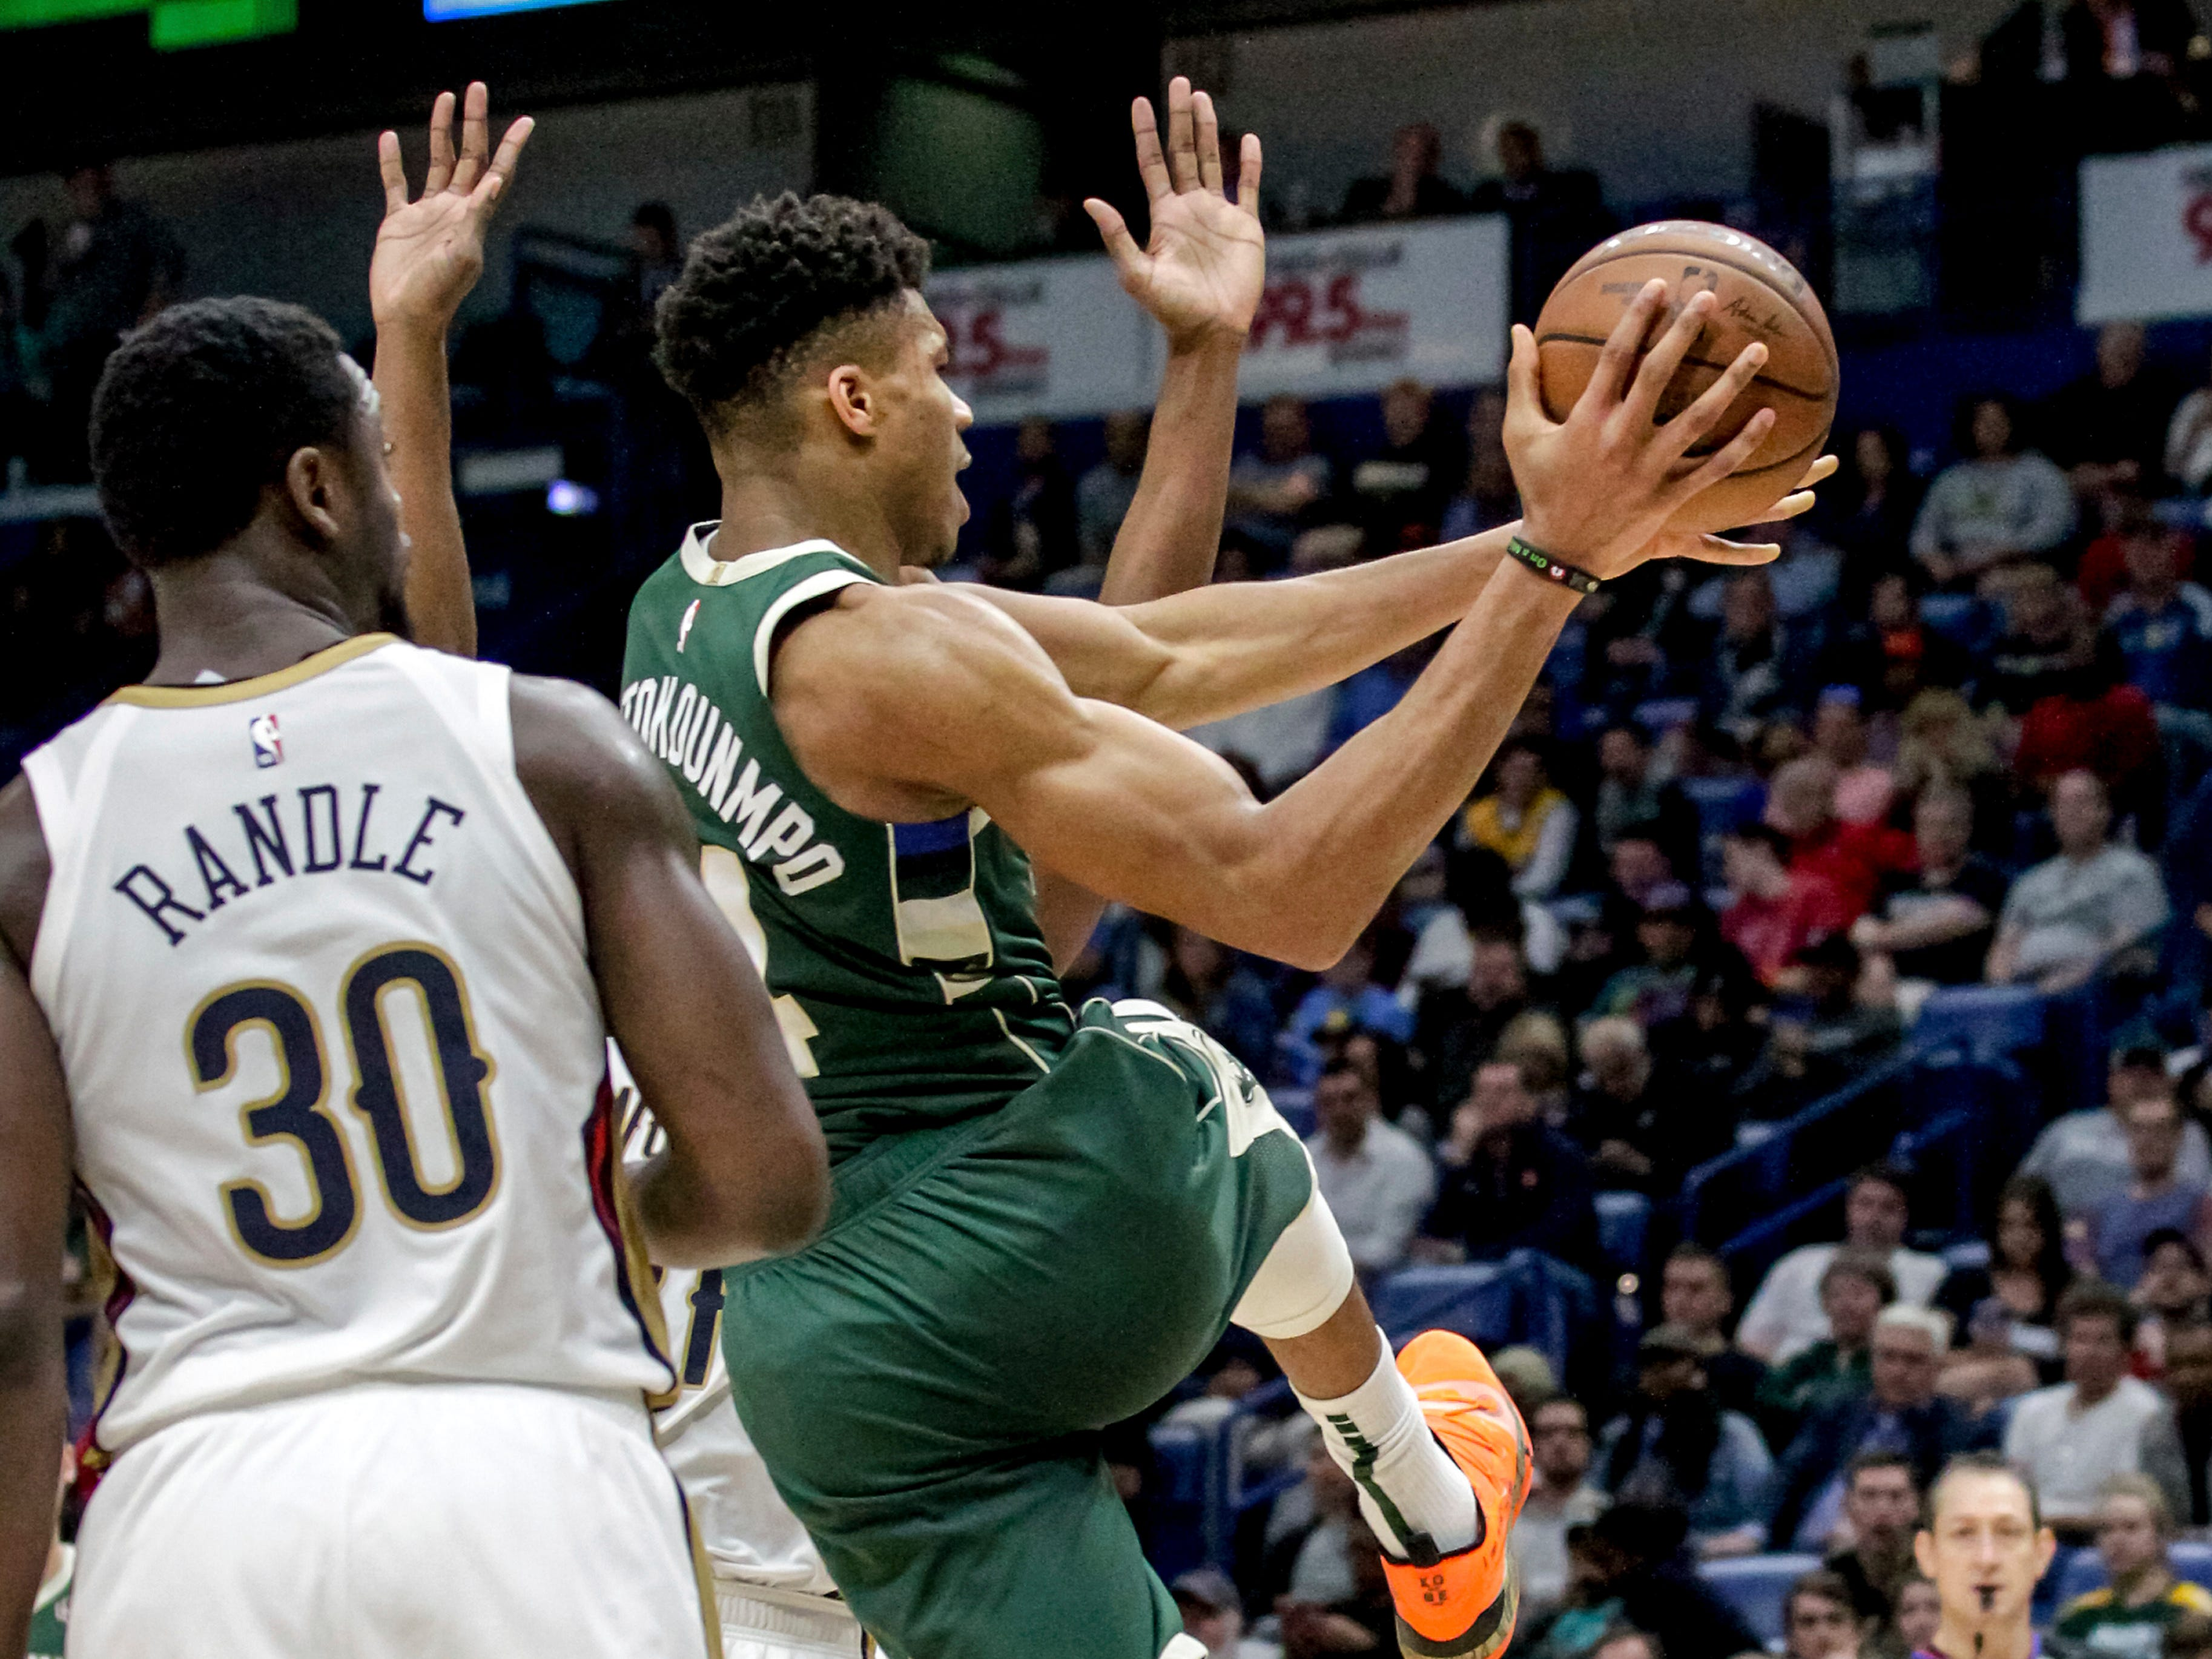 Bucks forward Giannis Antetokounmpo kicks a pass out to a teammate while being guarded by Pelicans center Julius Randle in the second half.